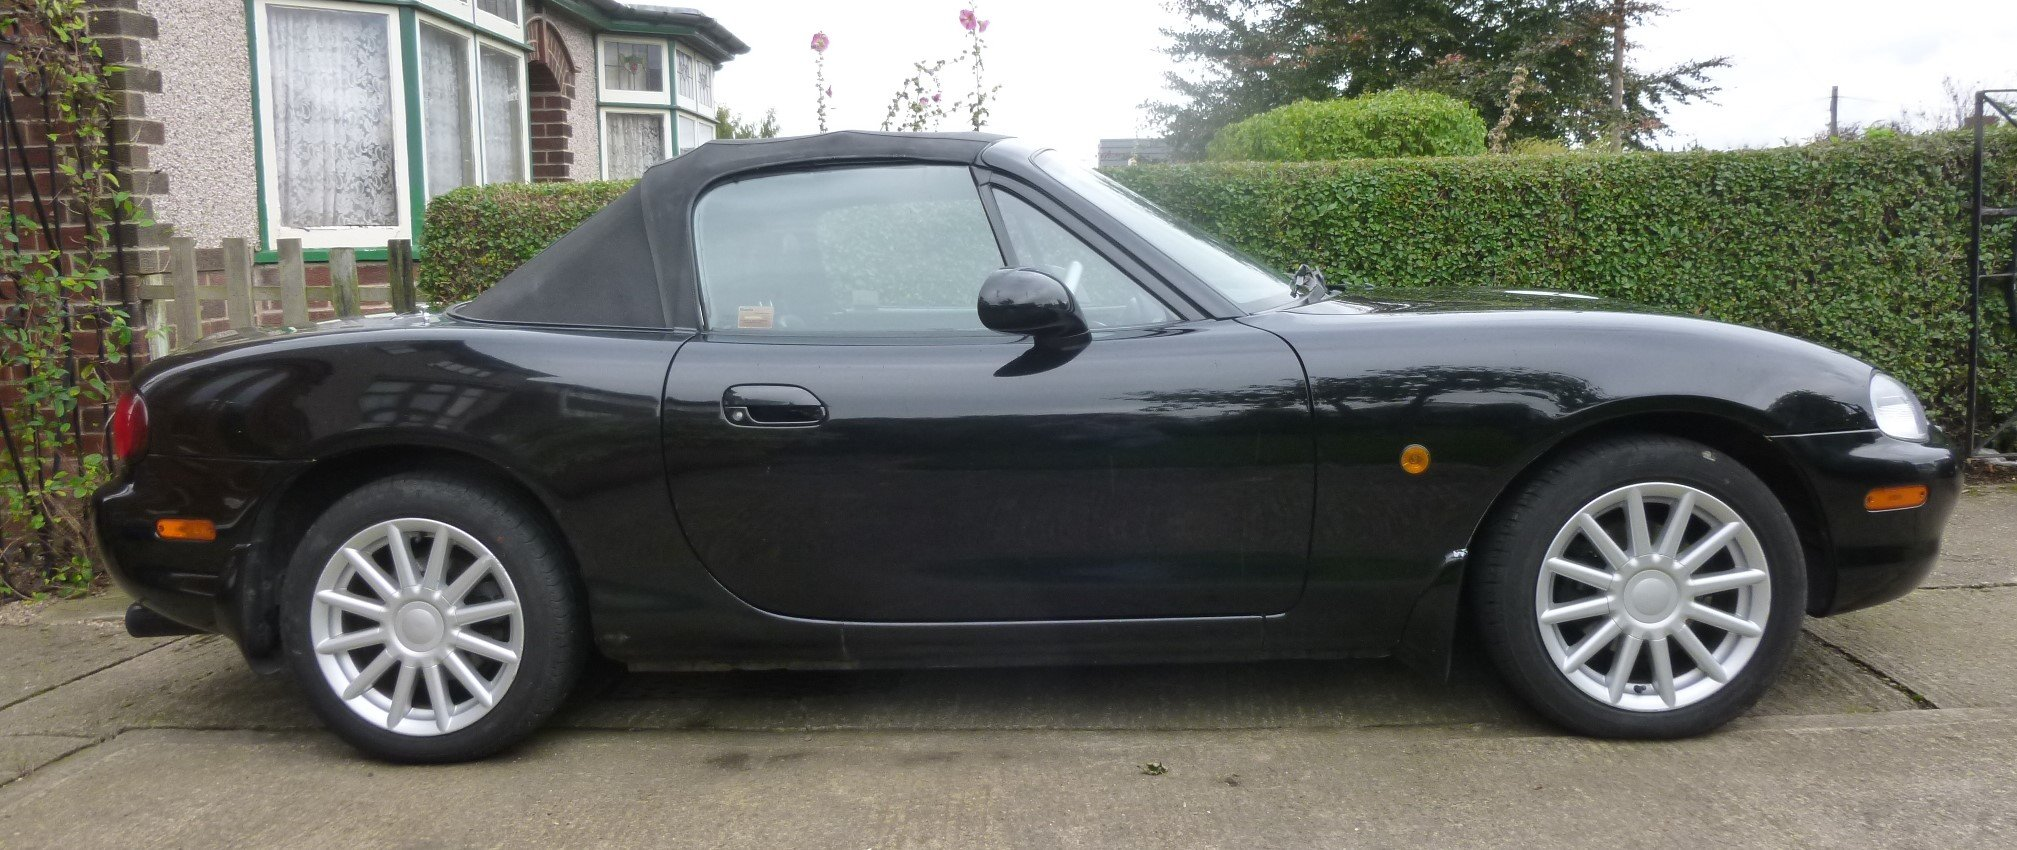 2001 Mazda MX5 mk 2 Jasper Conran Limited Edition SOLD (picture 2 of 6)